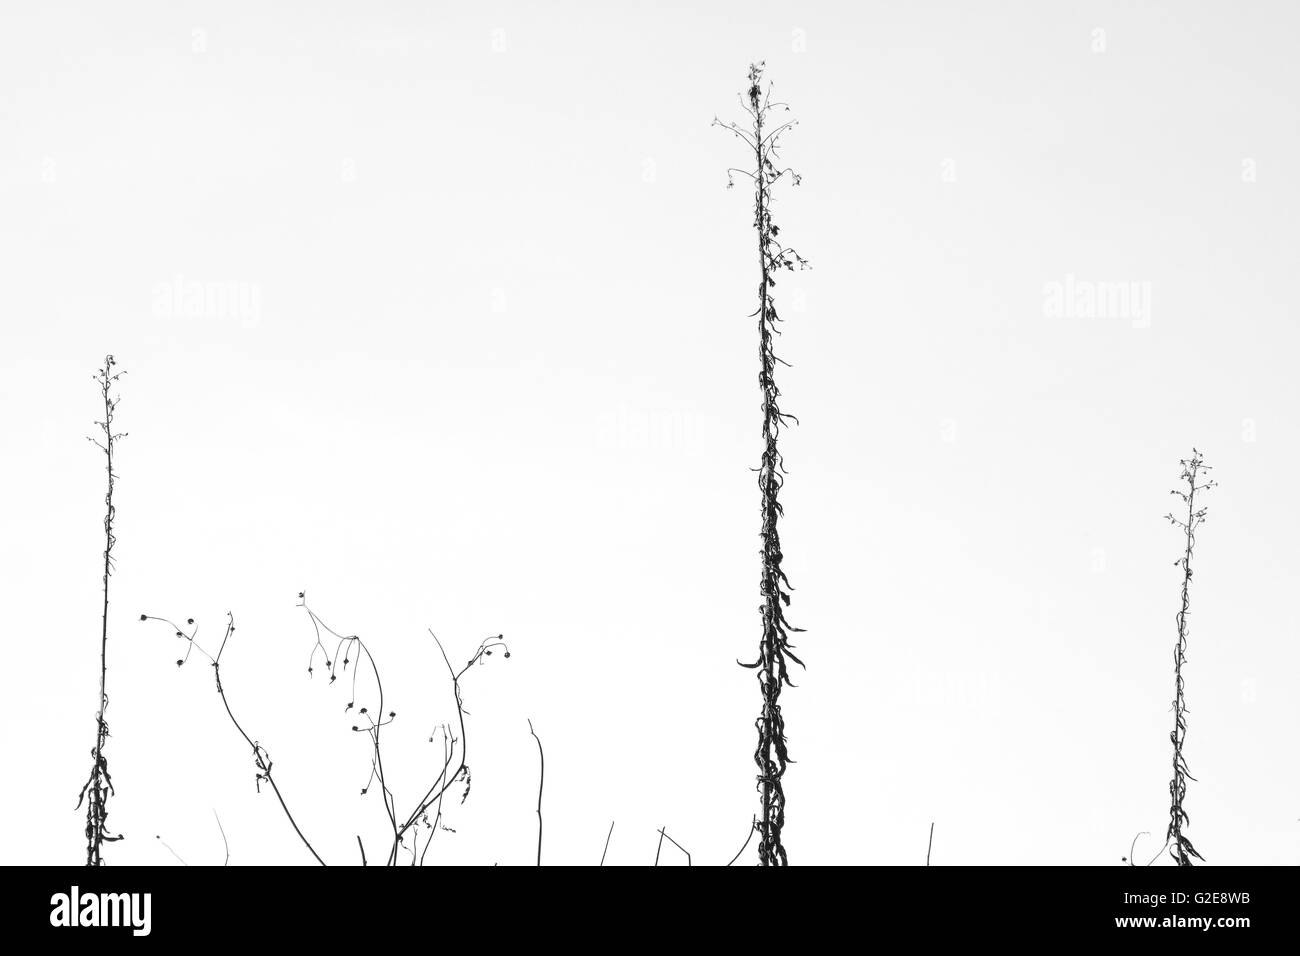 Plant Stems in Winter - Stock Image